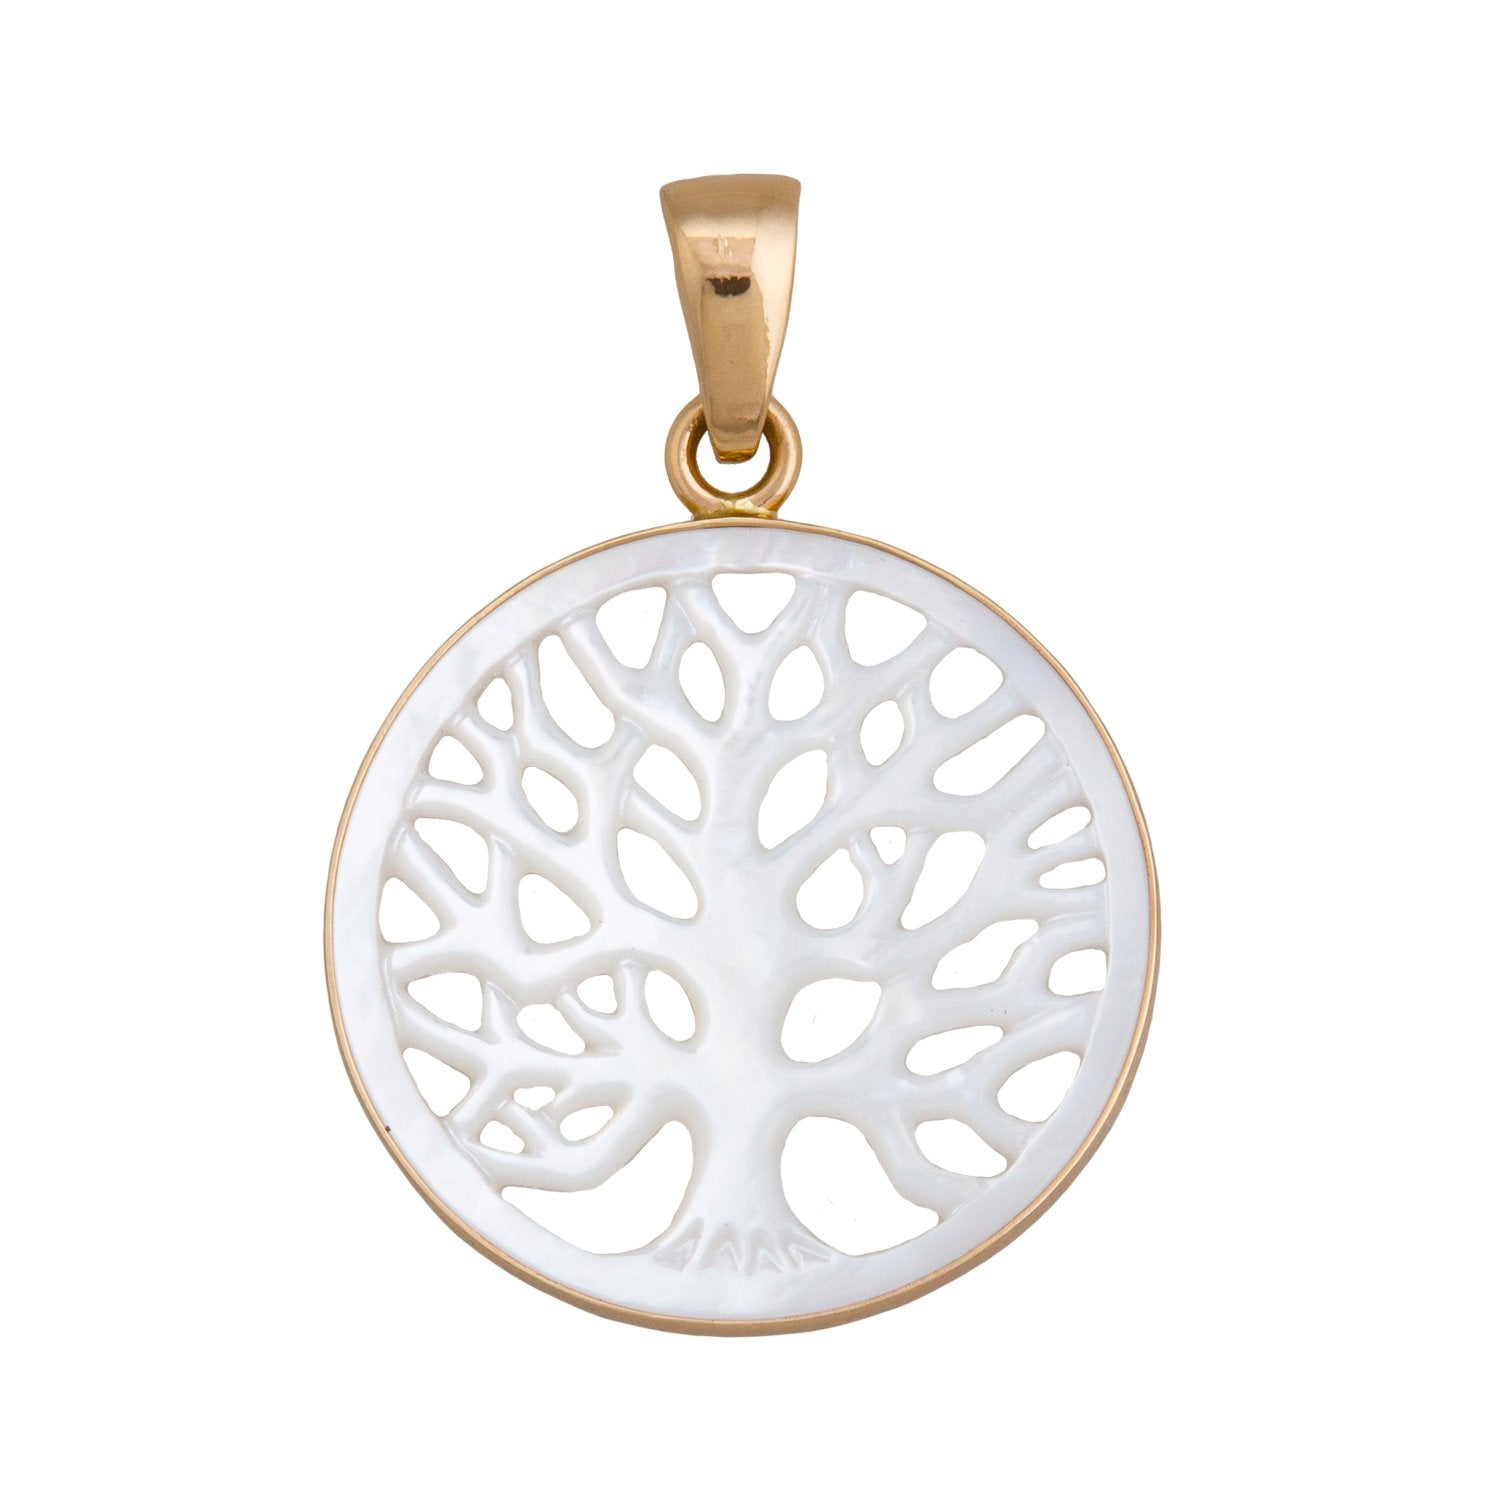 Alchemia 40mm Mother of Pearl Tree of Life Pendant | Charles Albert Jewelry